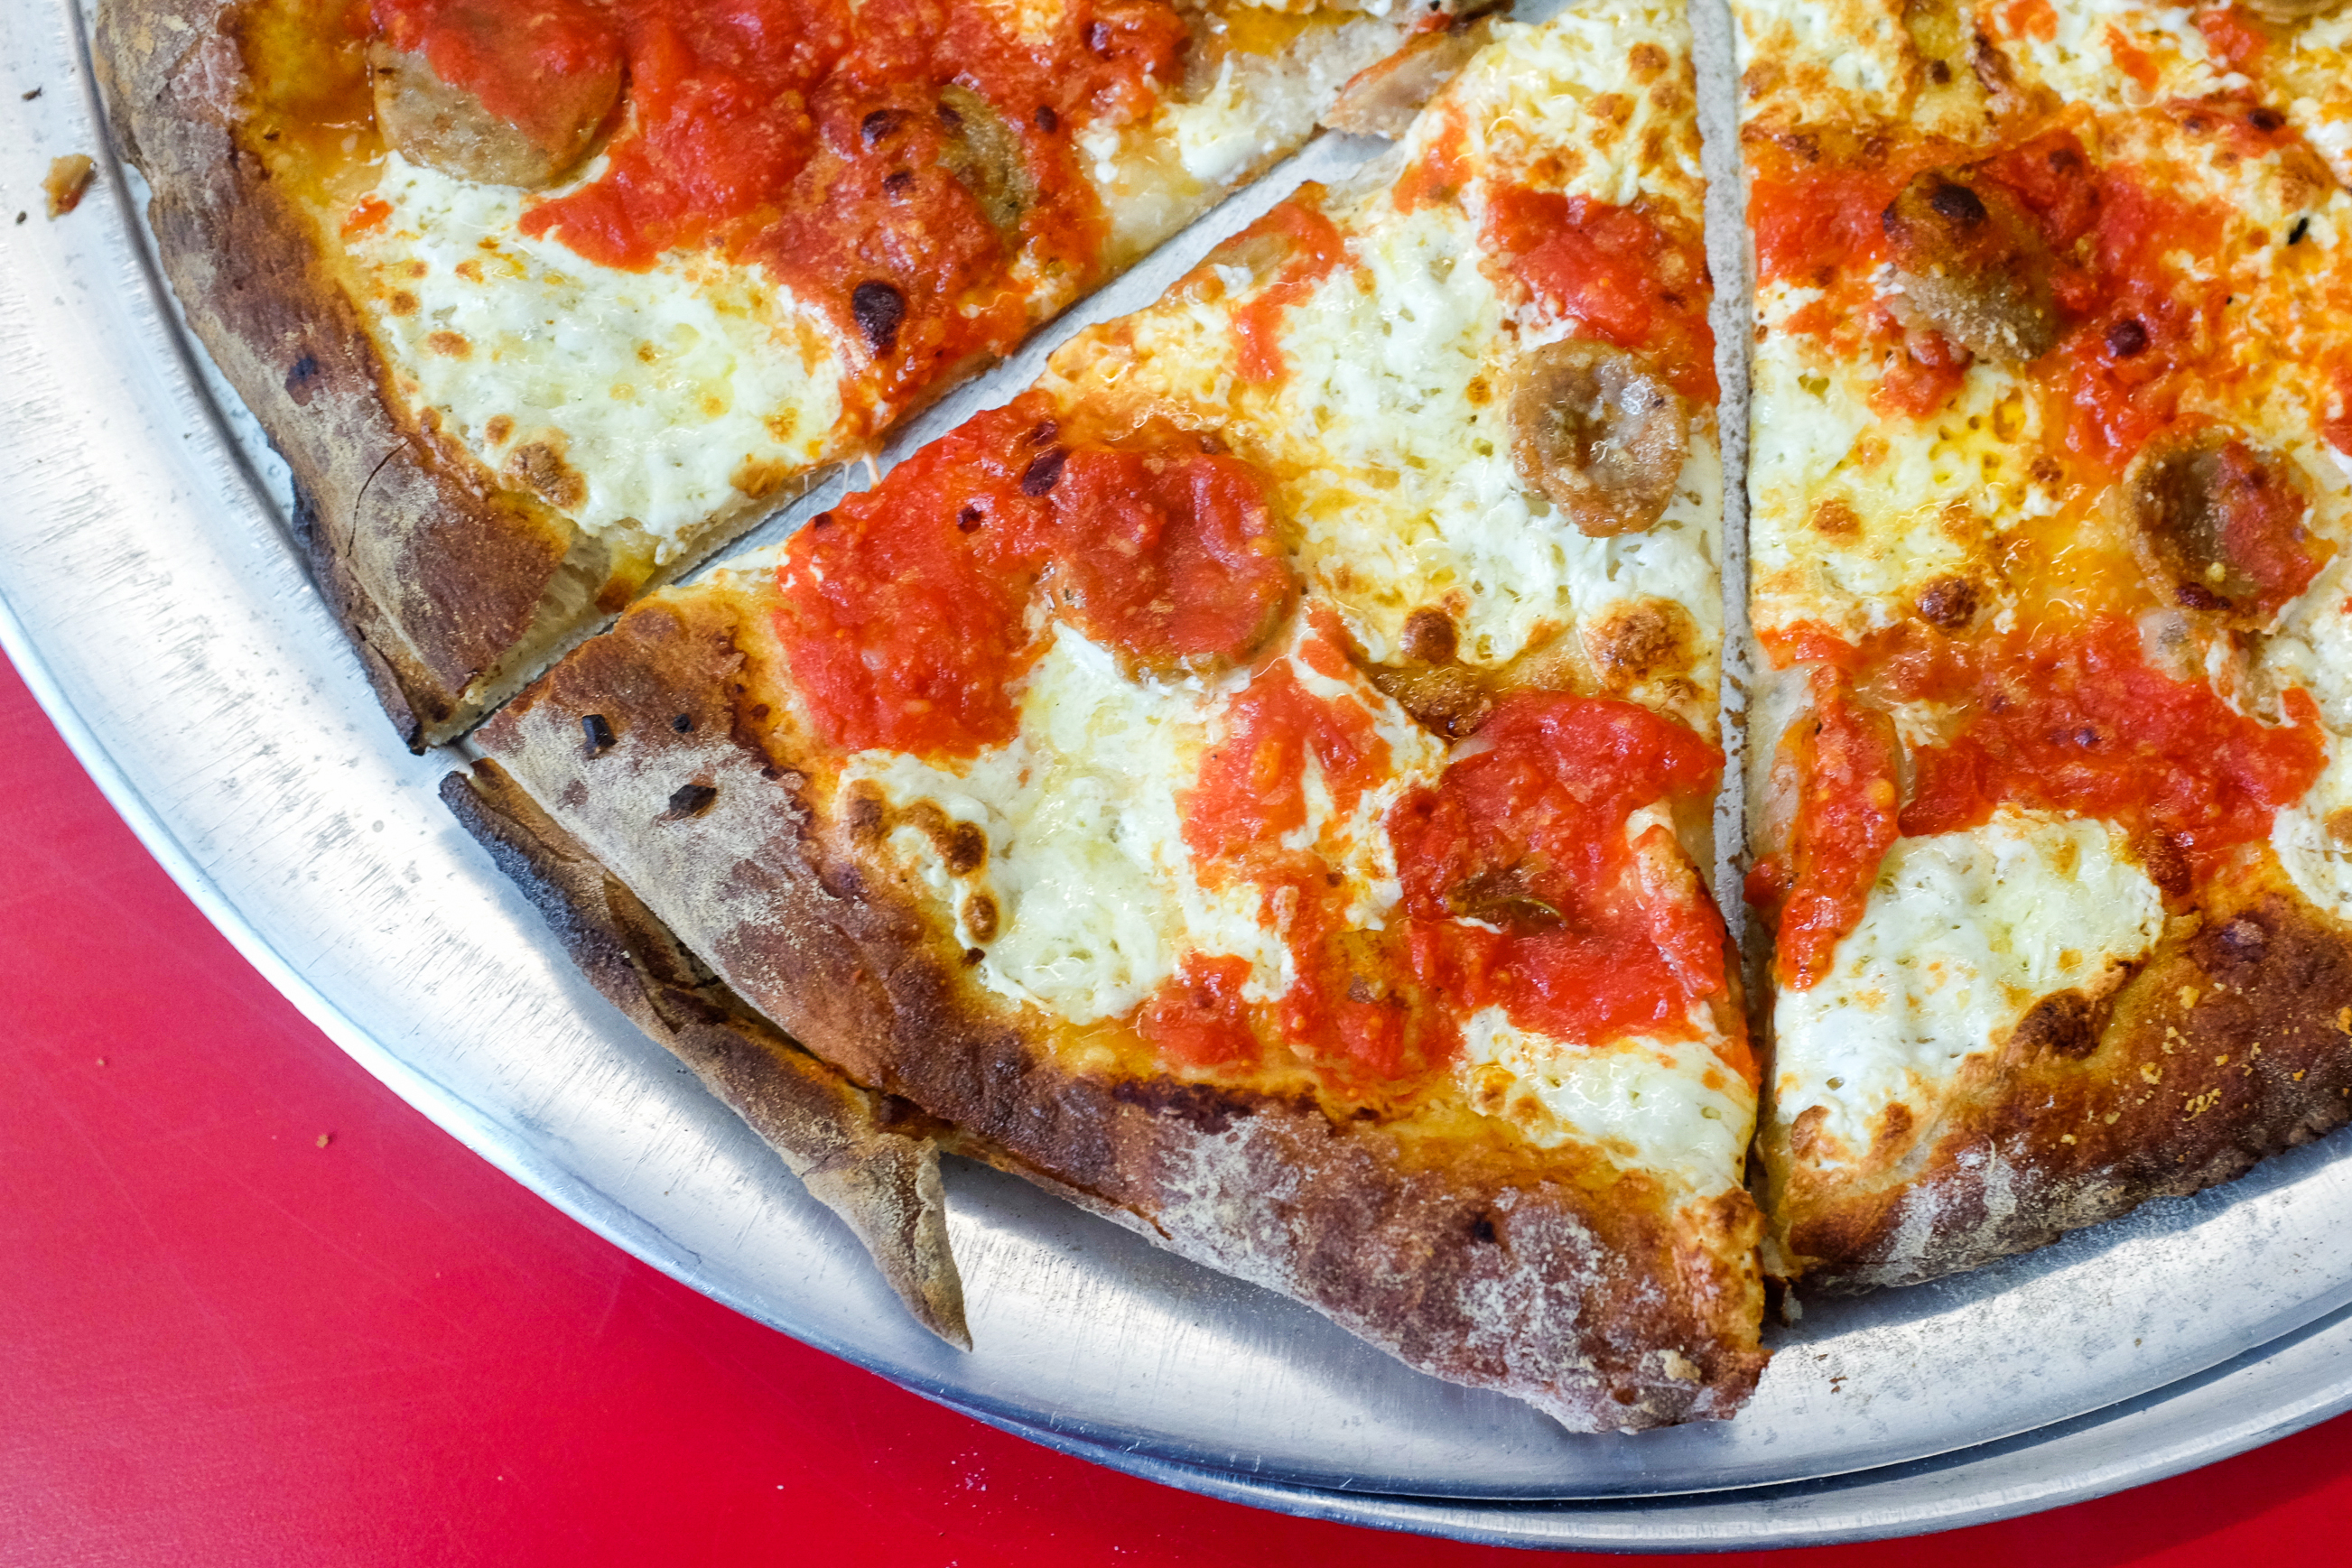 An overhead photograph of three slices of saucy pizza on a metal tray